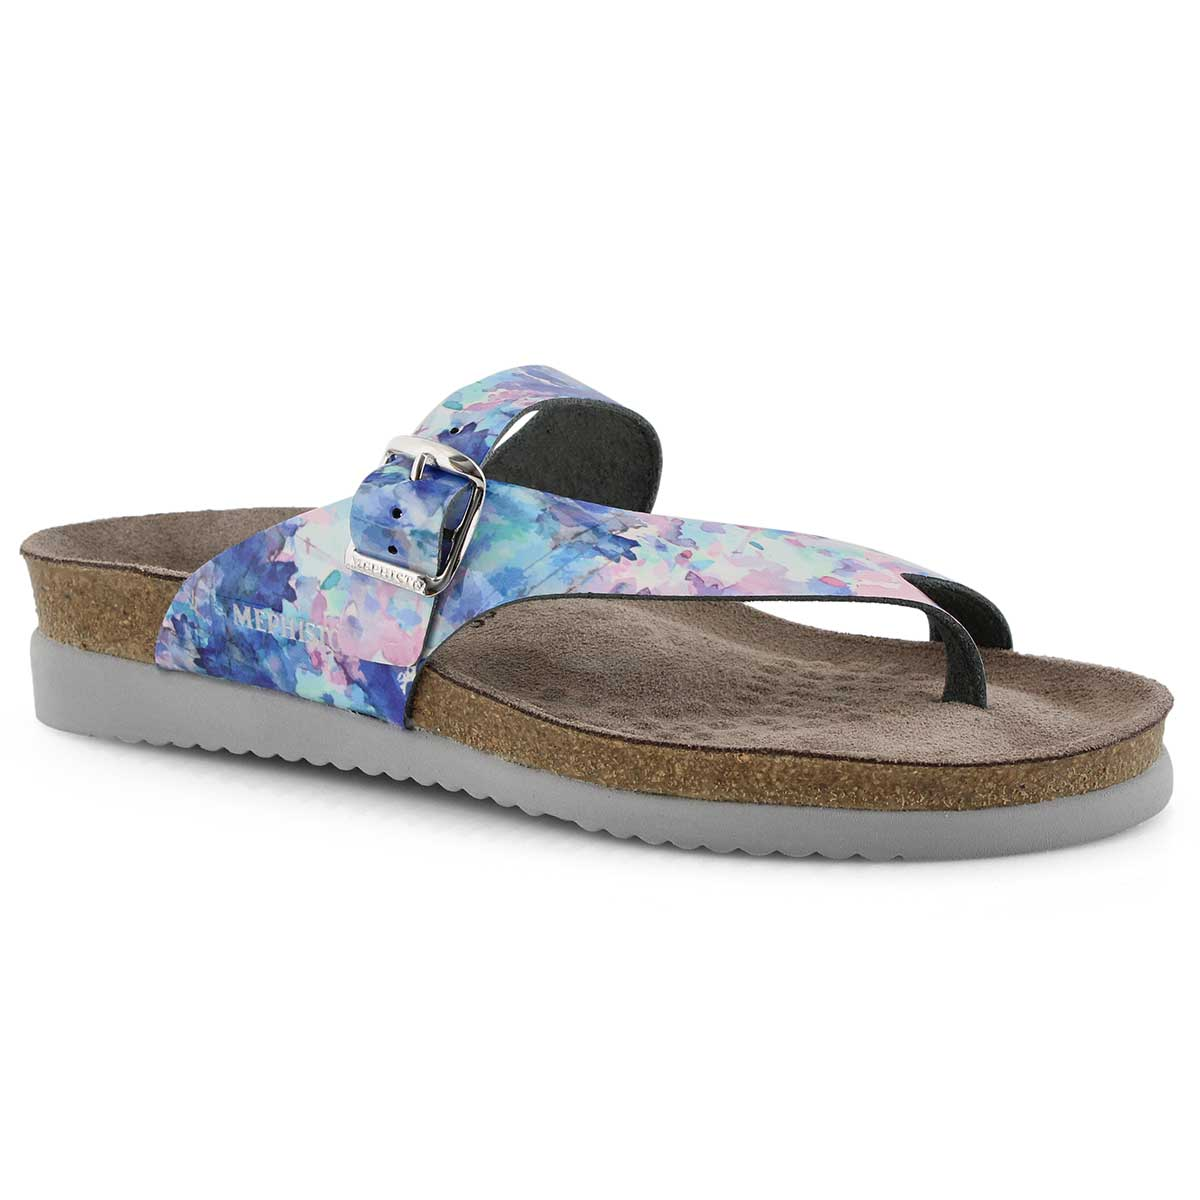 Lds Helen lagoon footbed thong